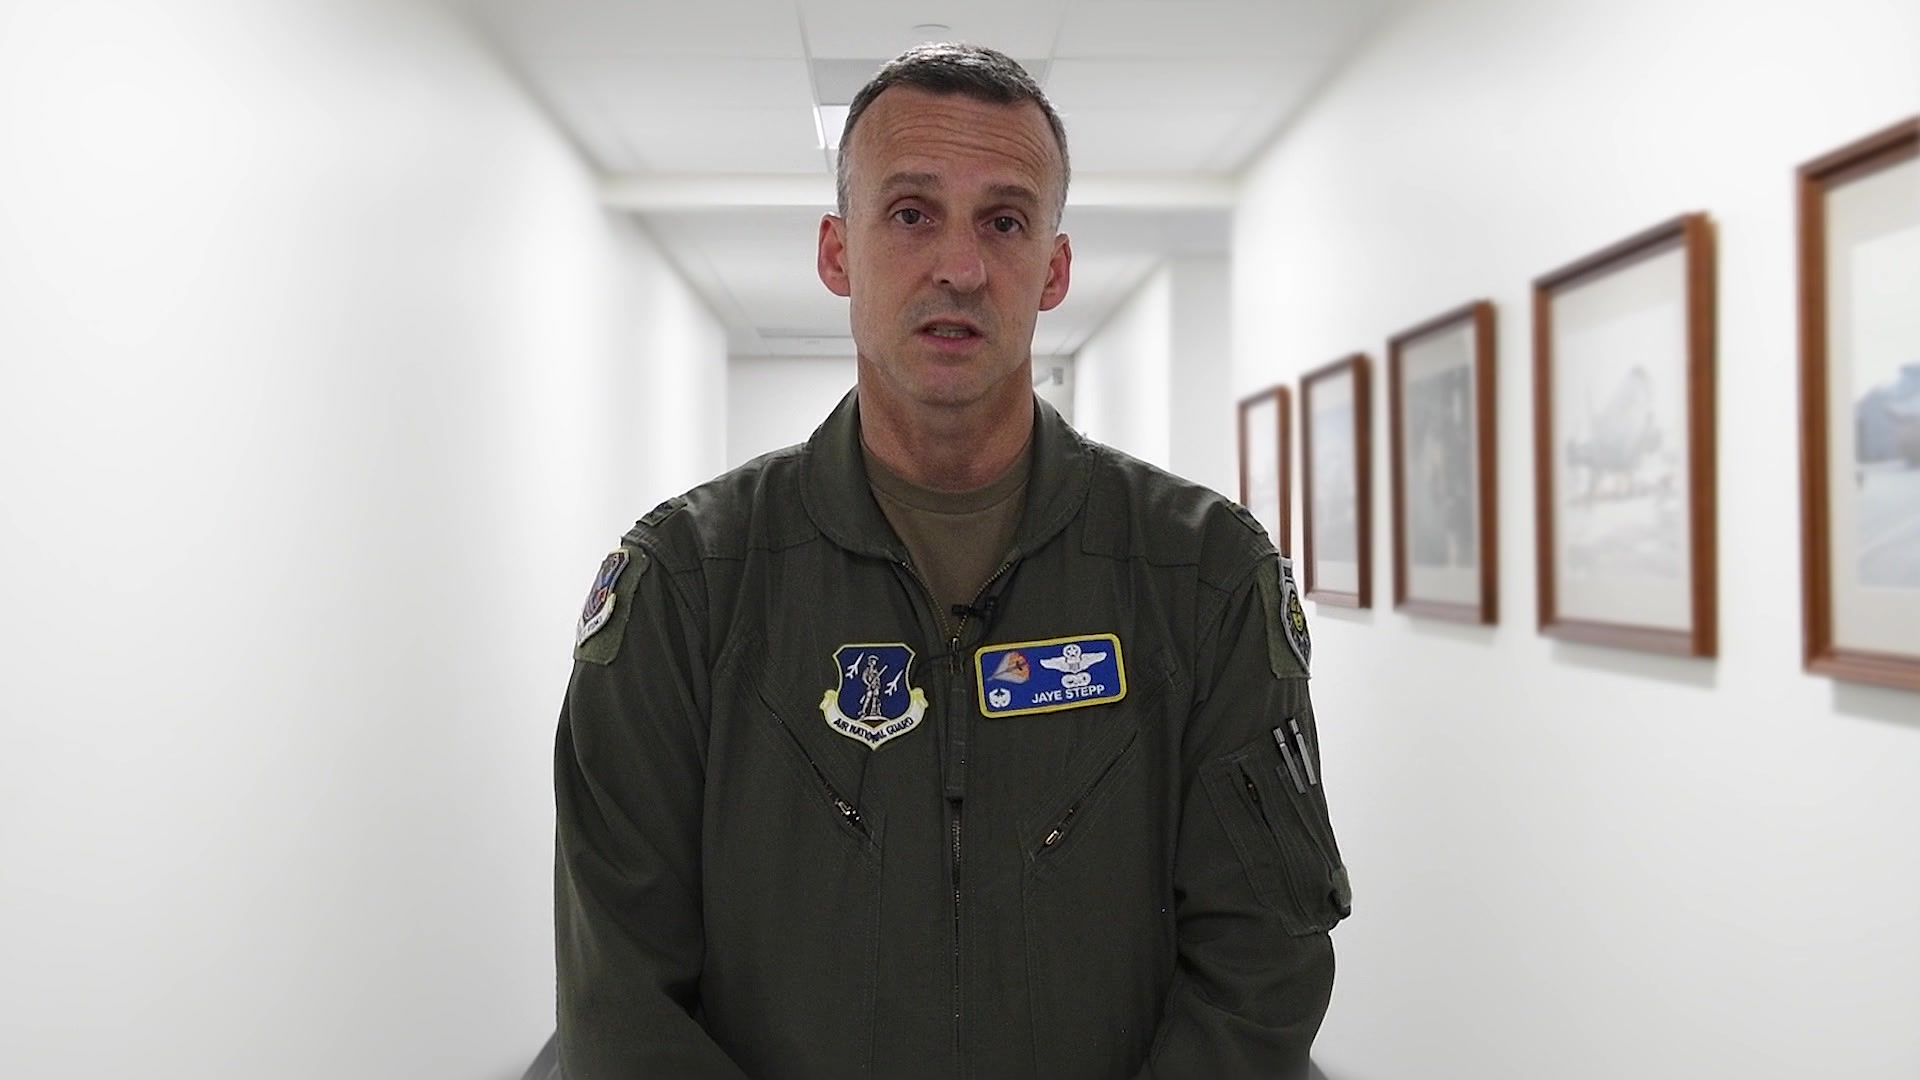 As part of the official Extremism stand down, the Commander of the 145th Airlift Wing has a recorded a message to the Wing on his and the Air Force's expectations going forward.